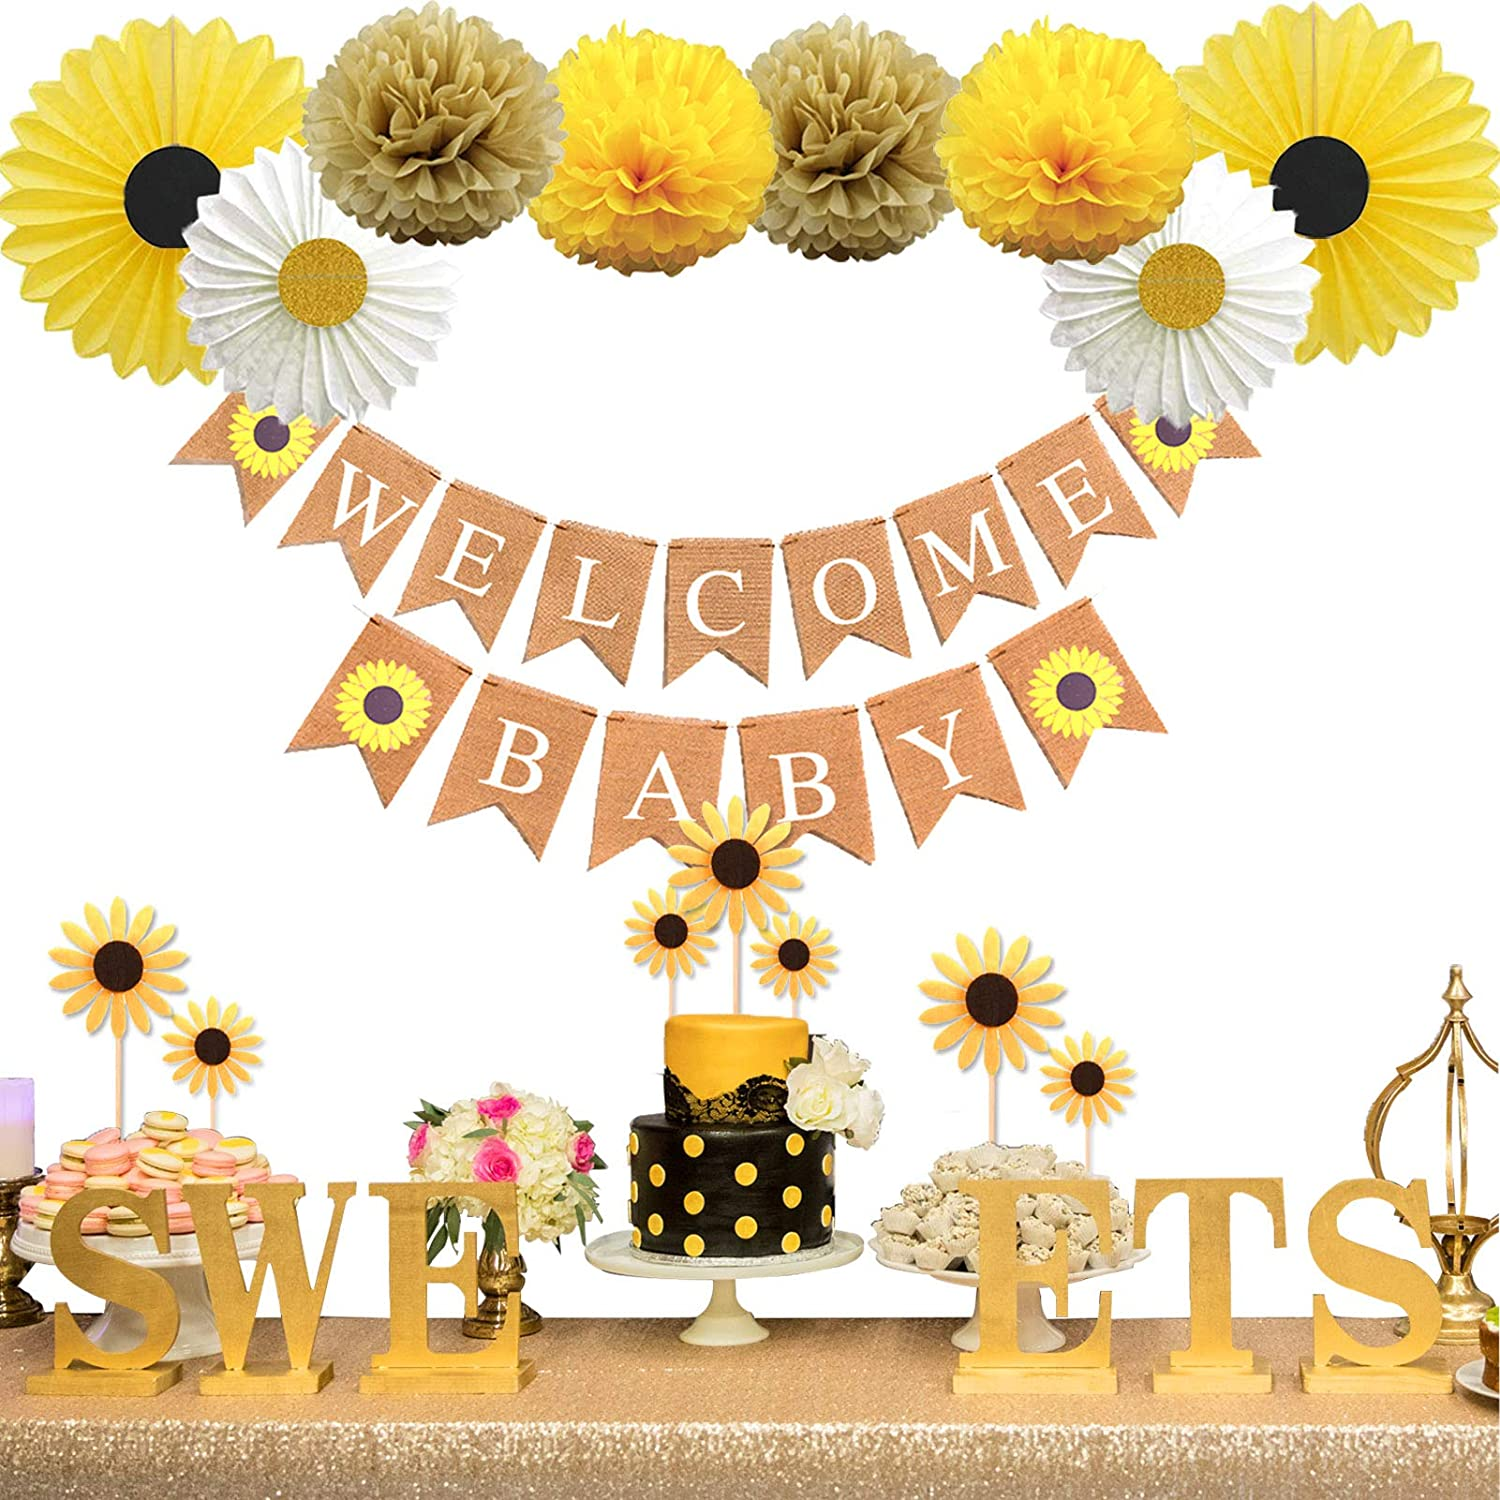 KeaParty Sunflower Baby Shower Party Decorations Supplies Kit, Sunflower Welcome Baby Banner, Yellow Sunflowers Cupcake Toppers, Tissue Paper Fans, Pom Poms